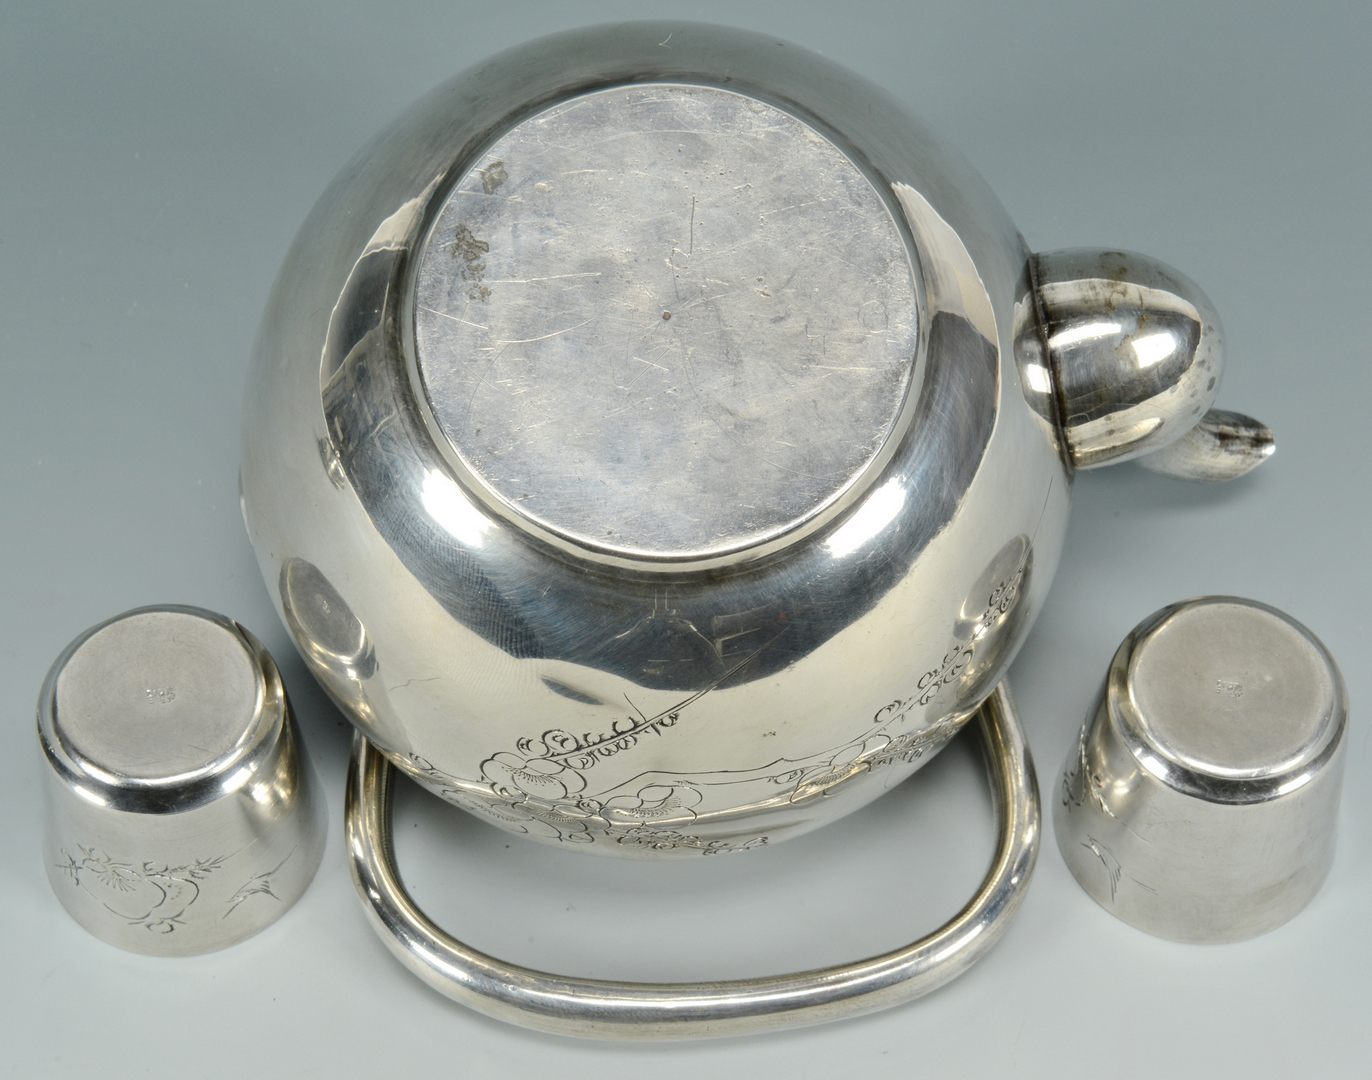 Lot 3088147: 4 pcs. Asian Silver plus Whiting beaker